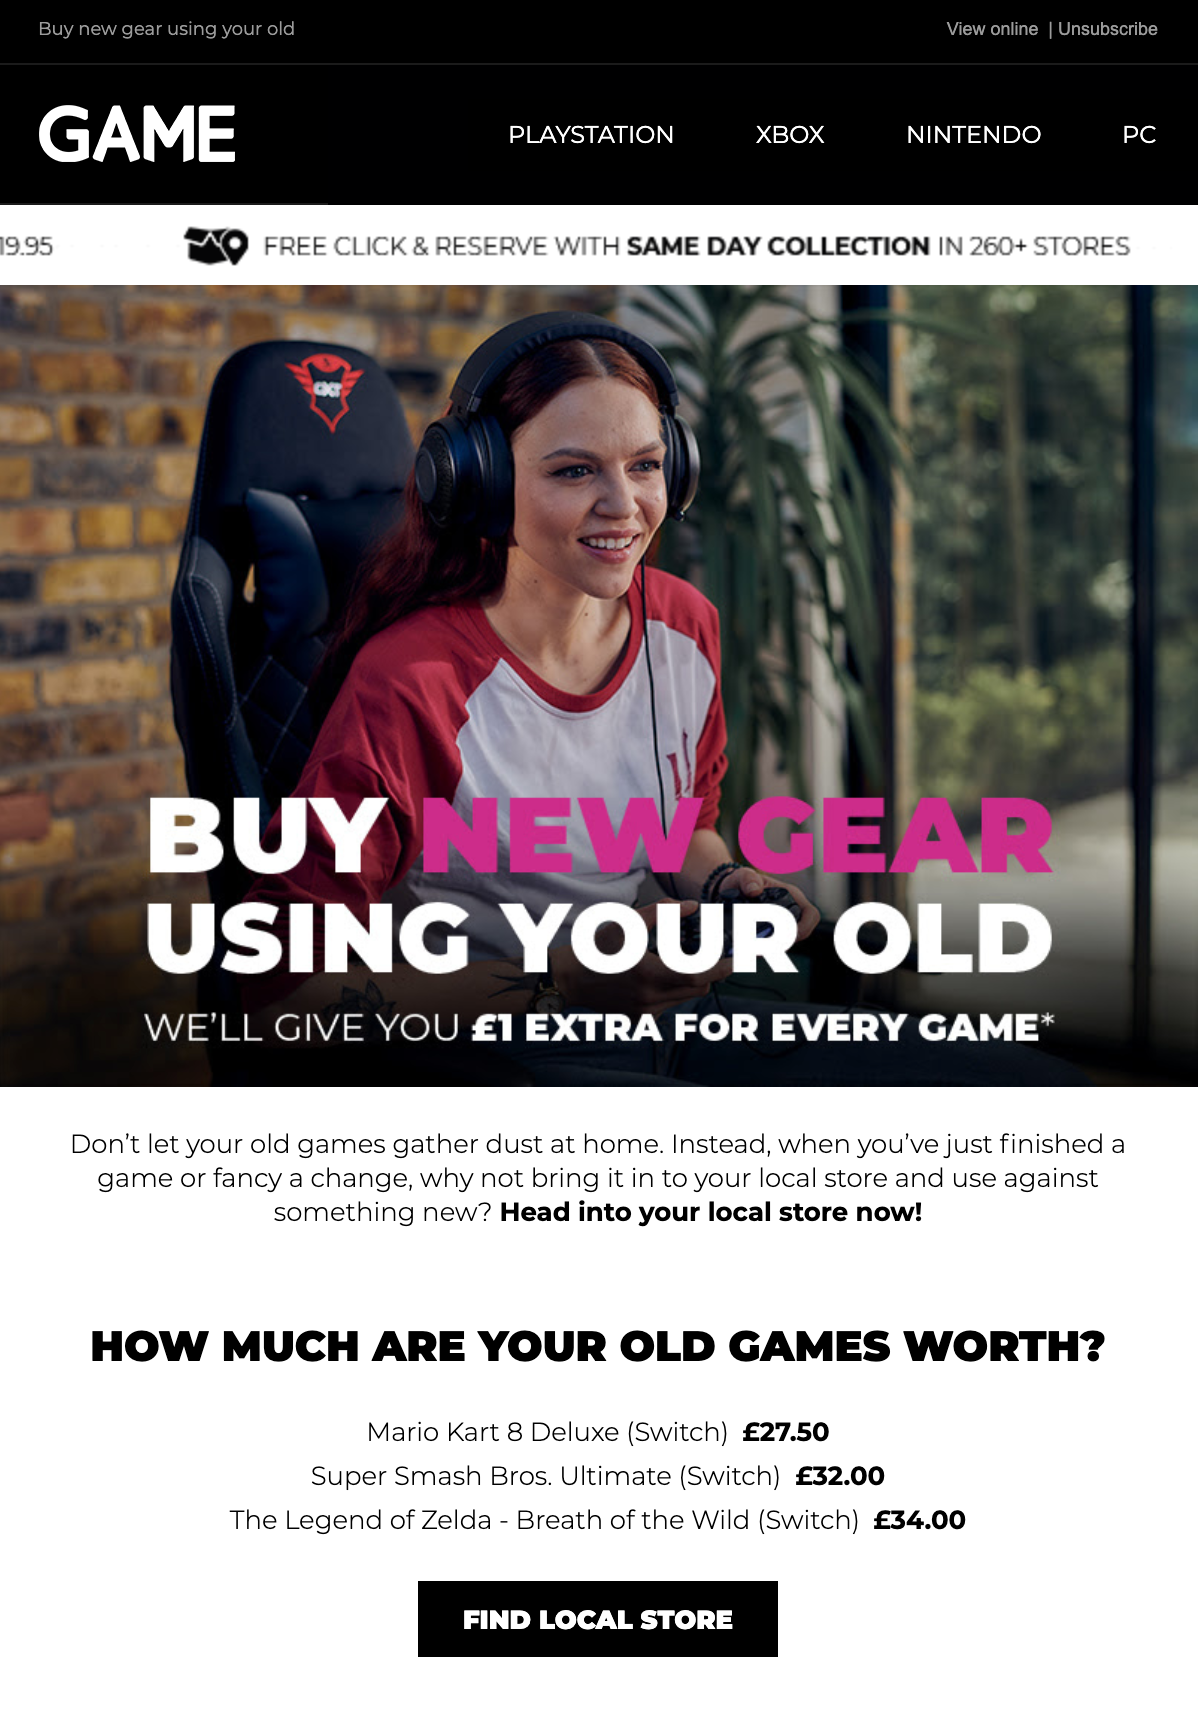 Image of GAME email